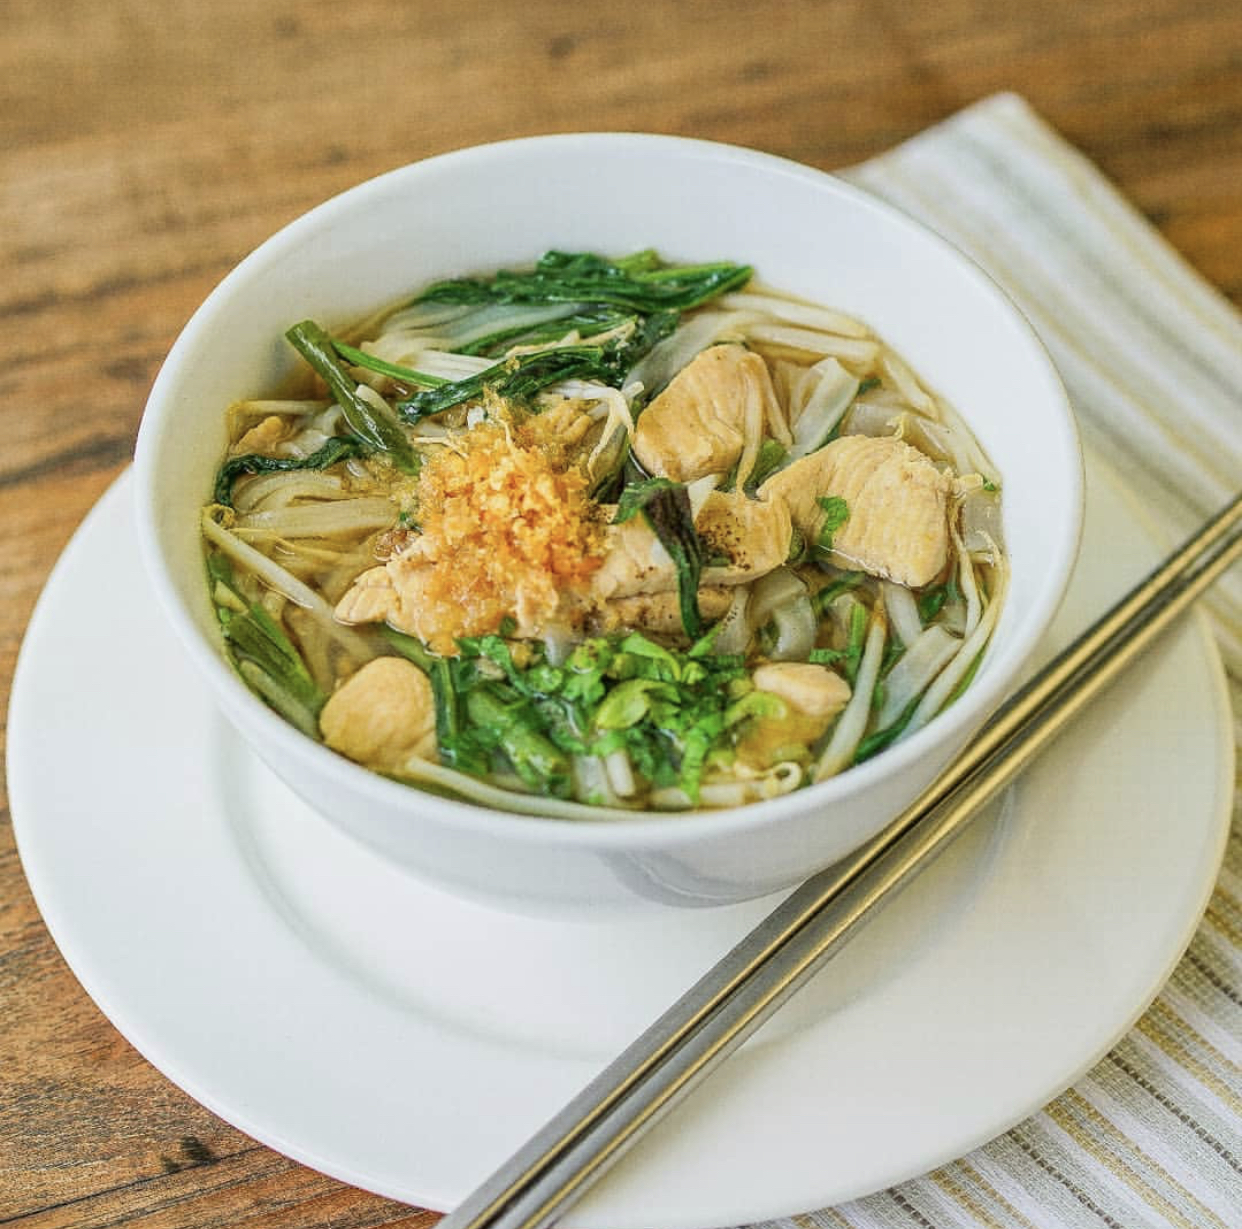 Noodle soup with chicken or shrimps